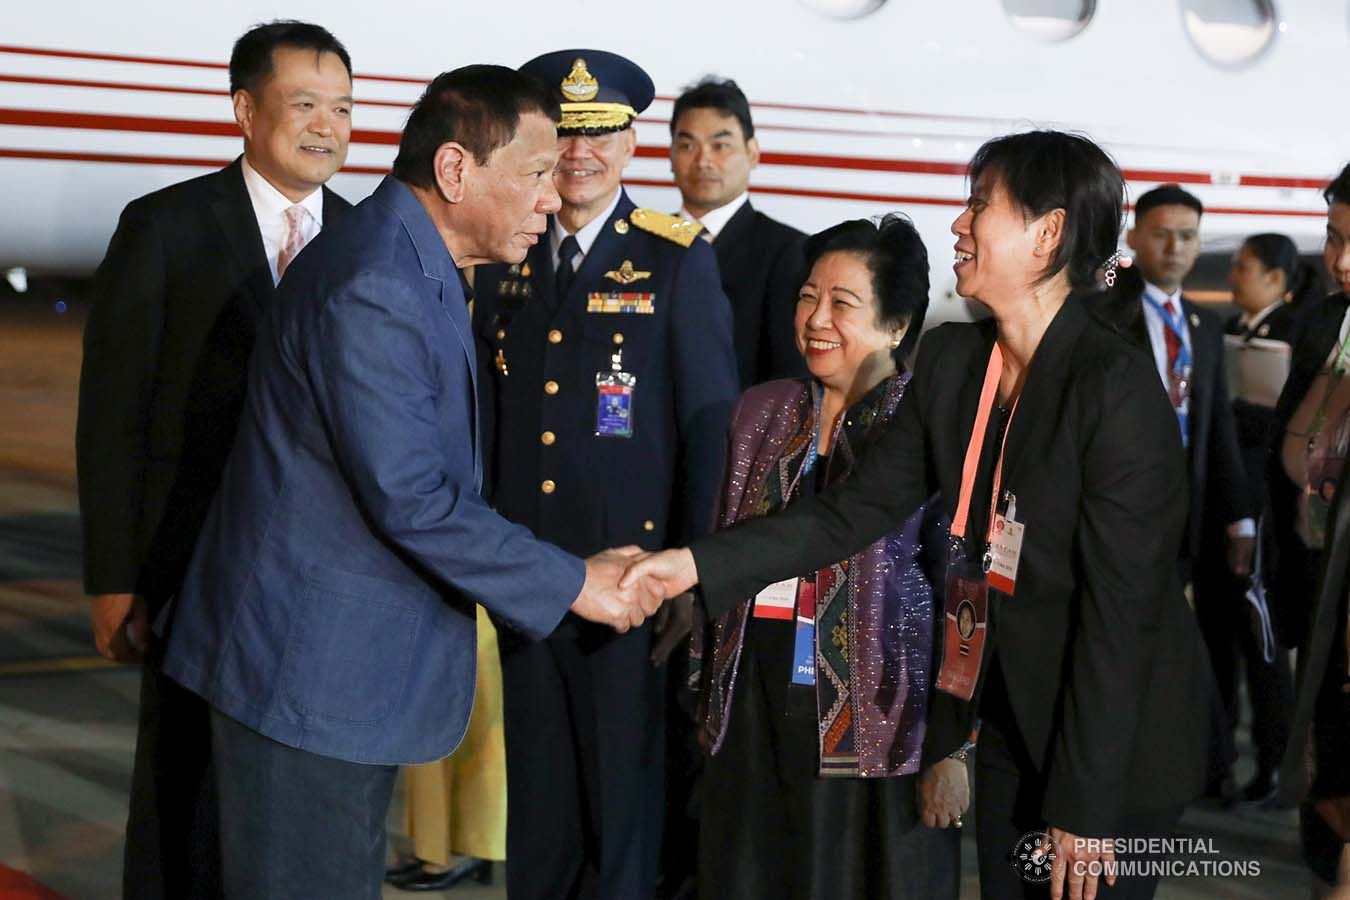 President Rodrigo Roa Duterte is welcomed by a member of the reception party upon his arrival at the Royal Thai Air Force Base in Bangkok, Thailand on November 1, 2019. TOTO LOZANO/PRESIDENTIAL PHOTO